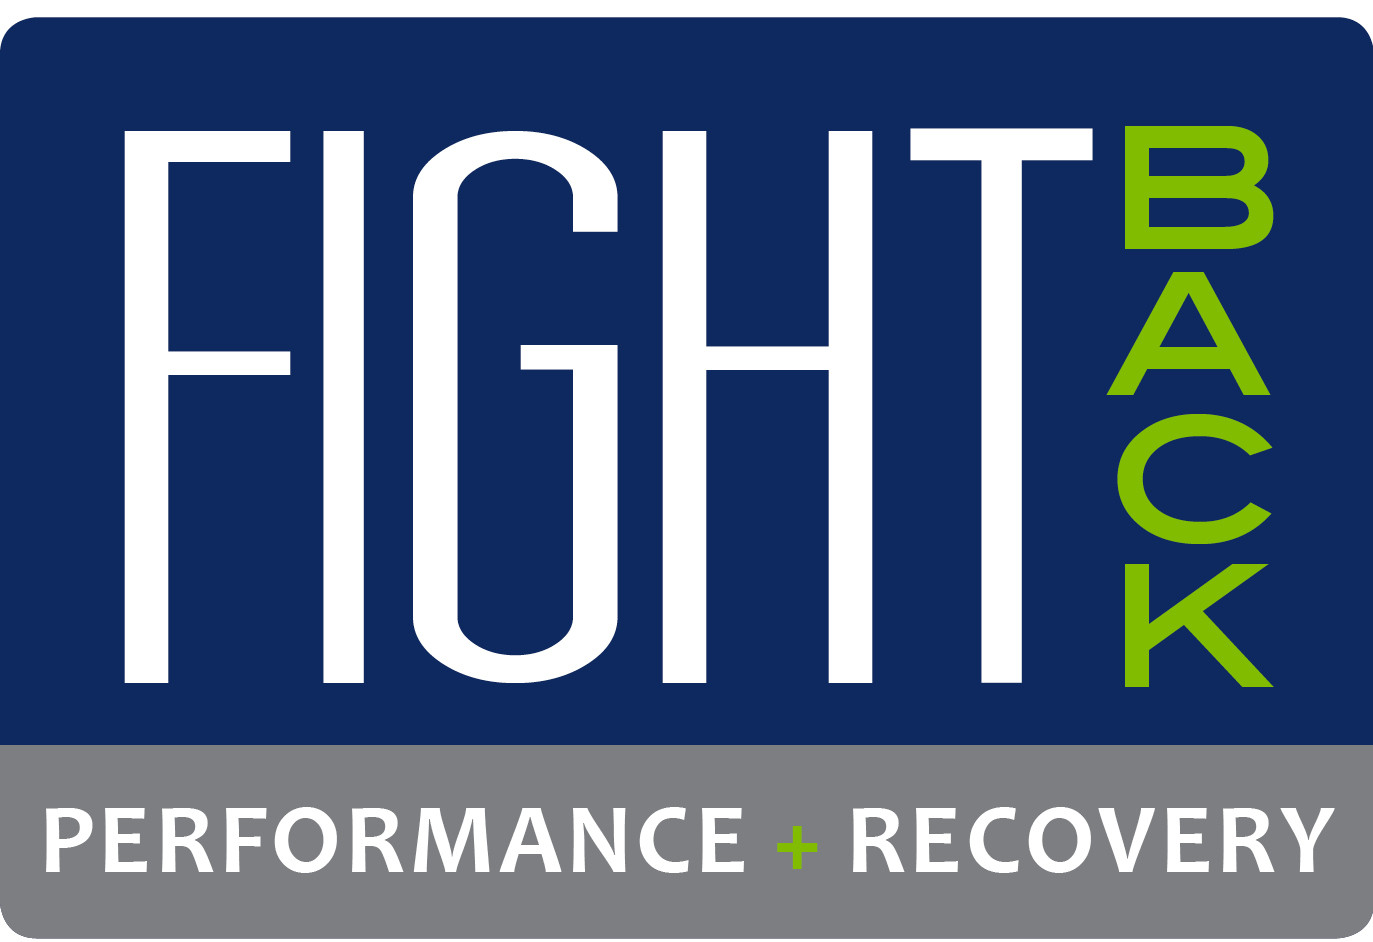 Fight Back Performance and Recovery